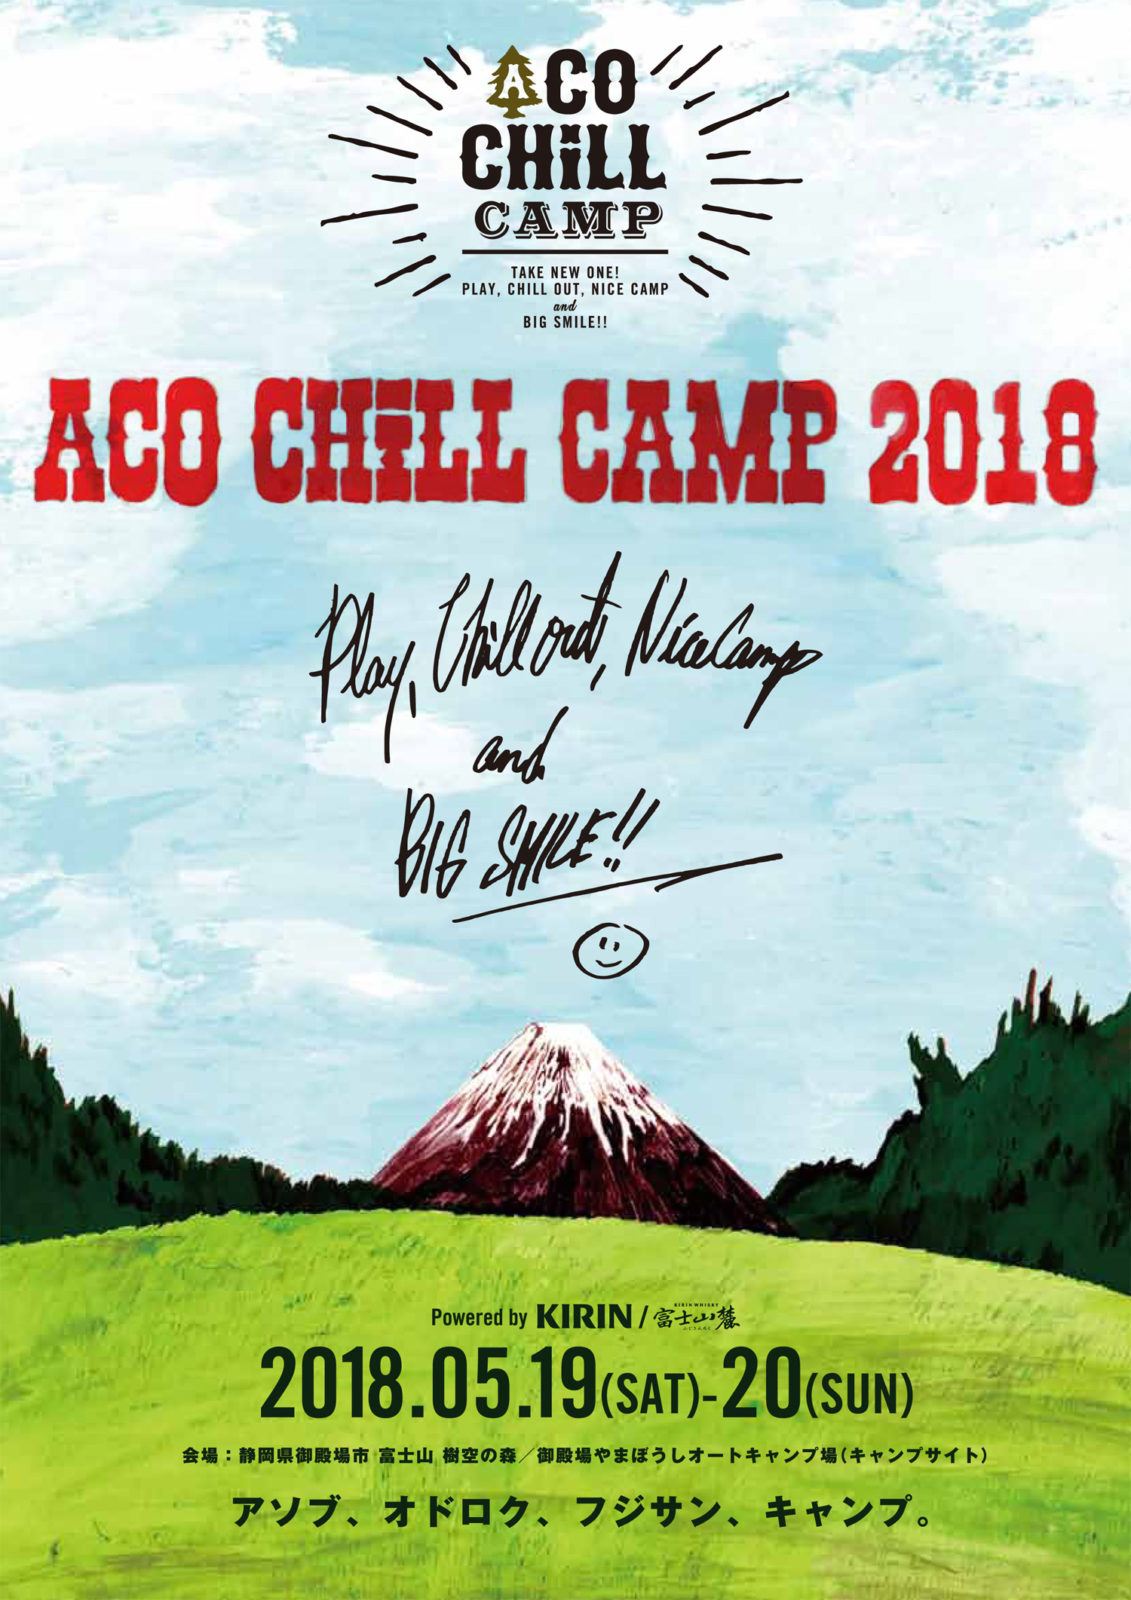 ACO CHiLL CAMP 2018 開催決定!サムネイル画像